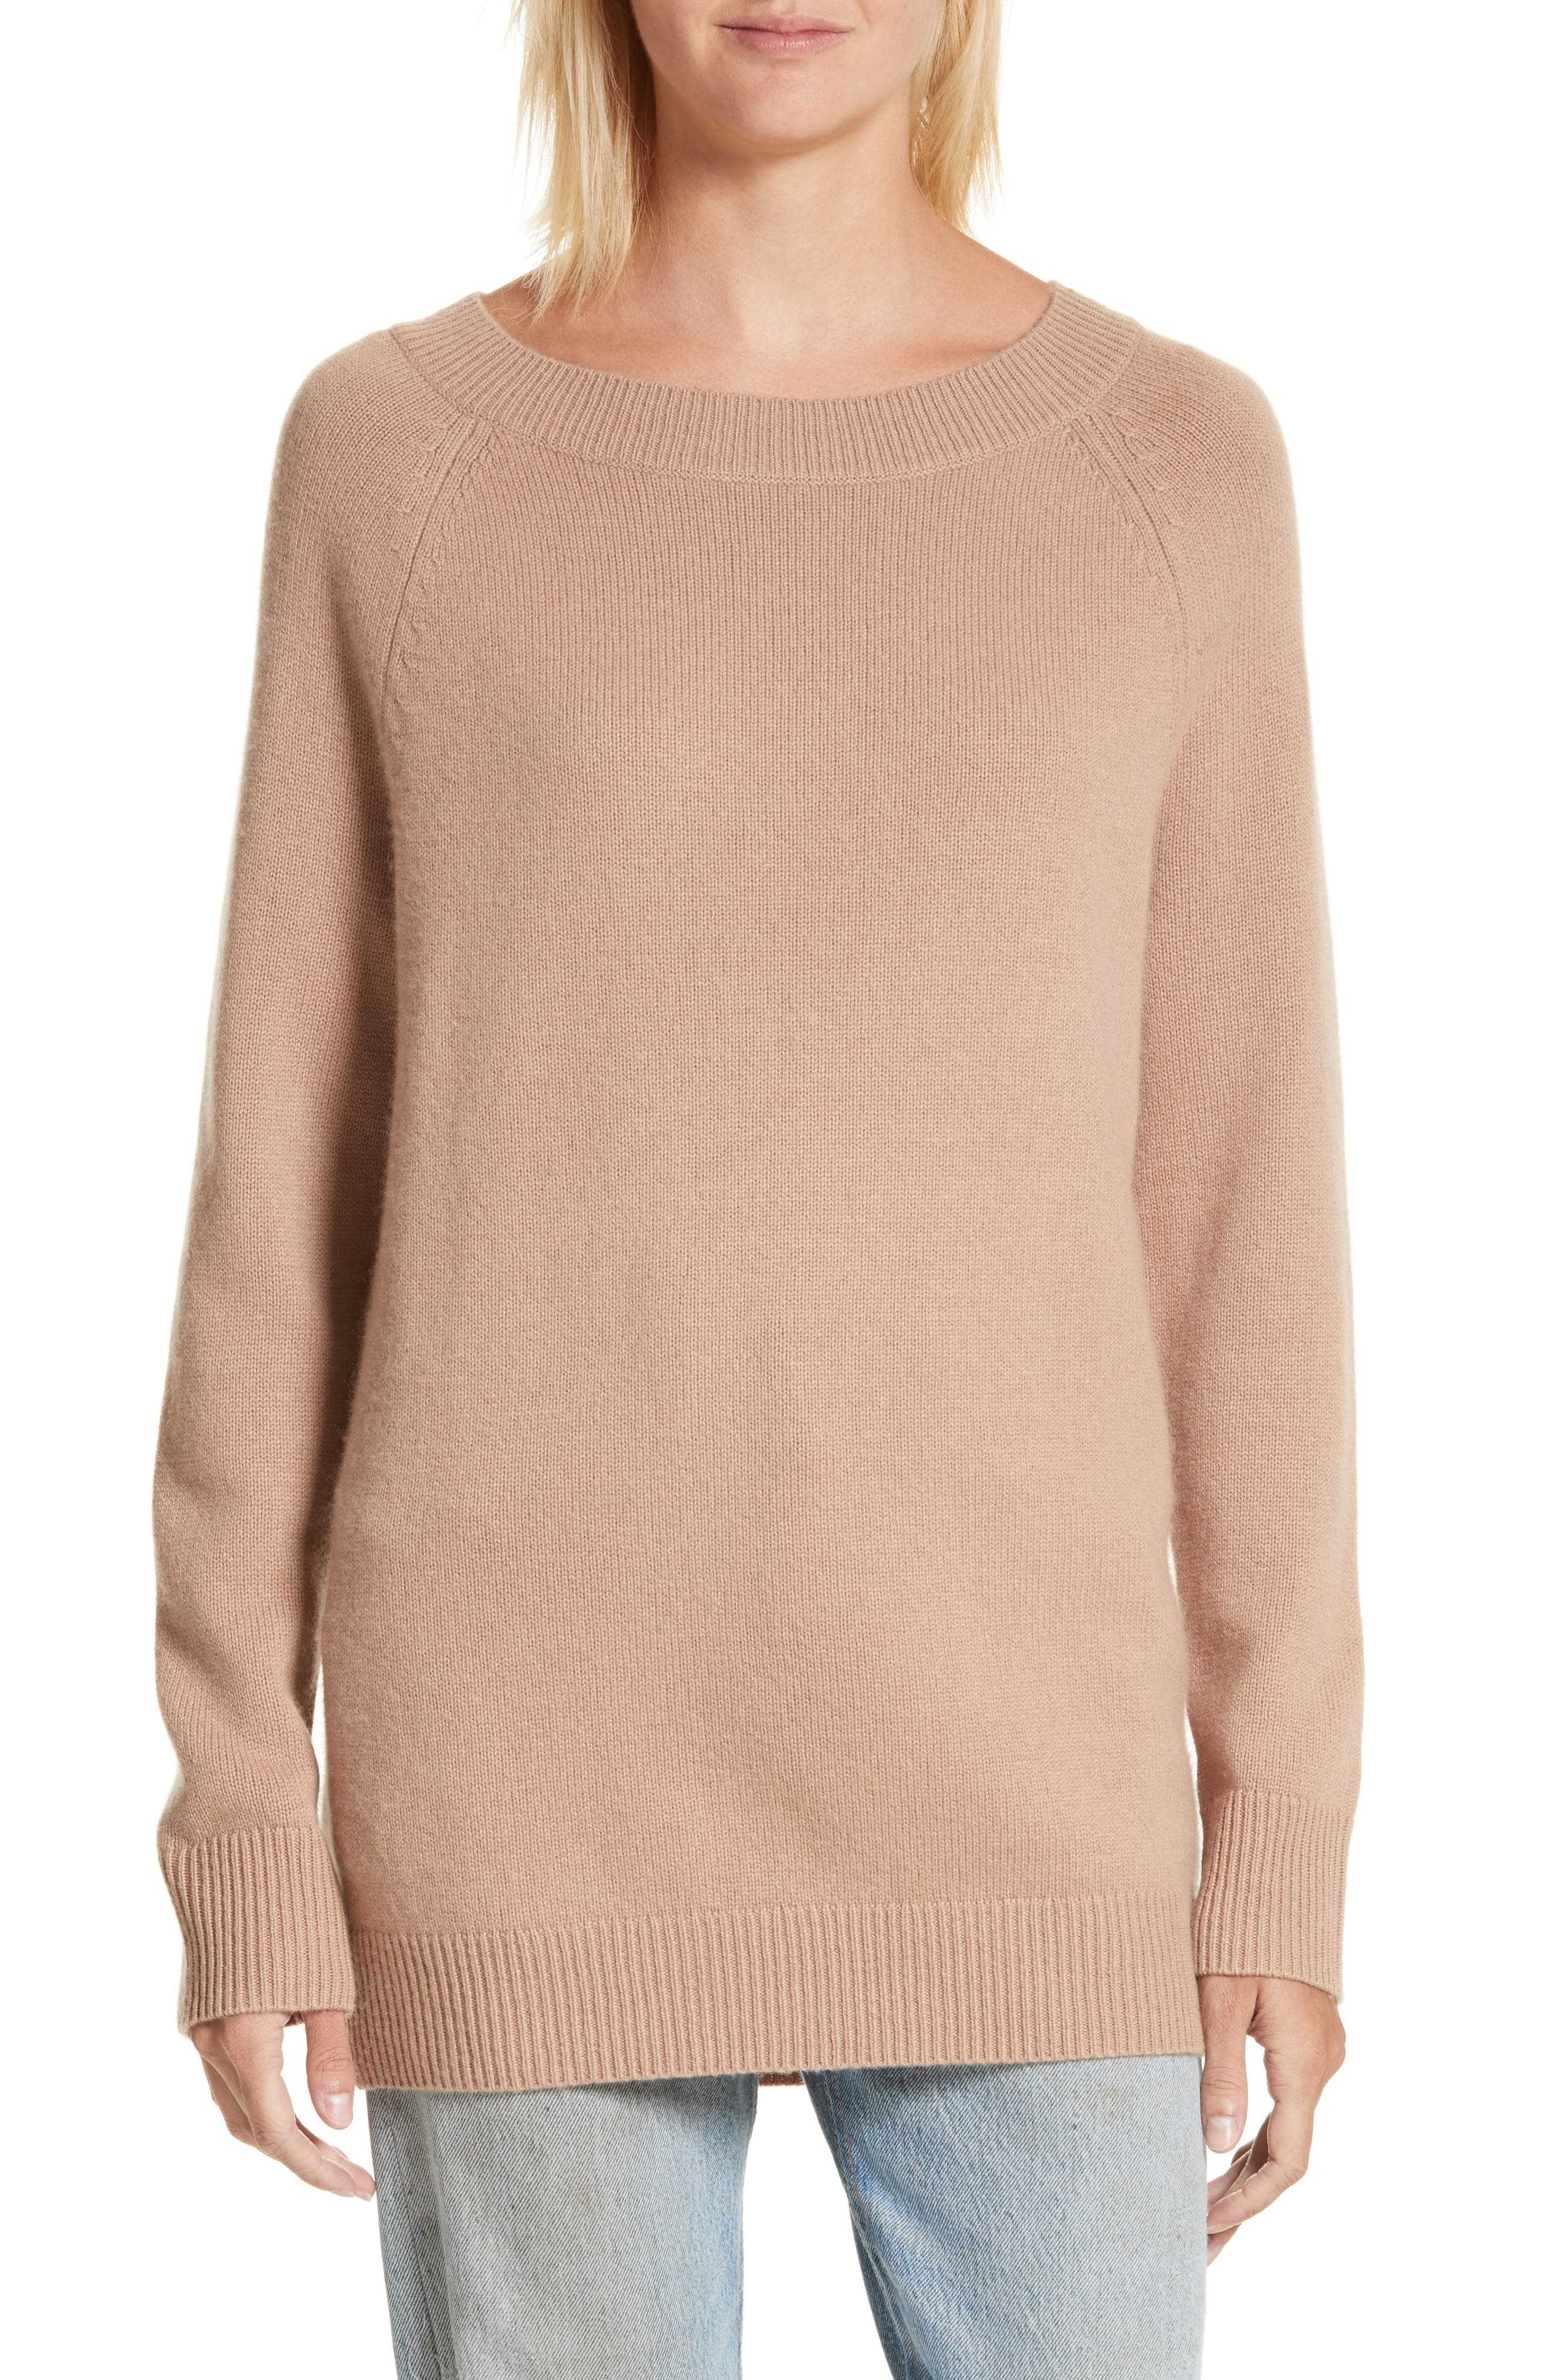 Cody Wool & Cashmere Boatneck Sweater,                             Main thumbnail 1, color,                             Camel